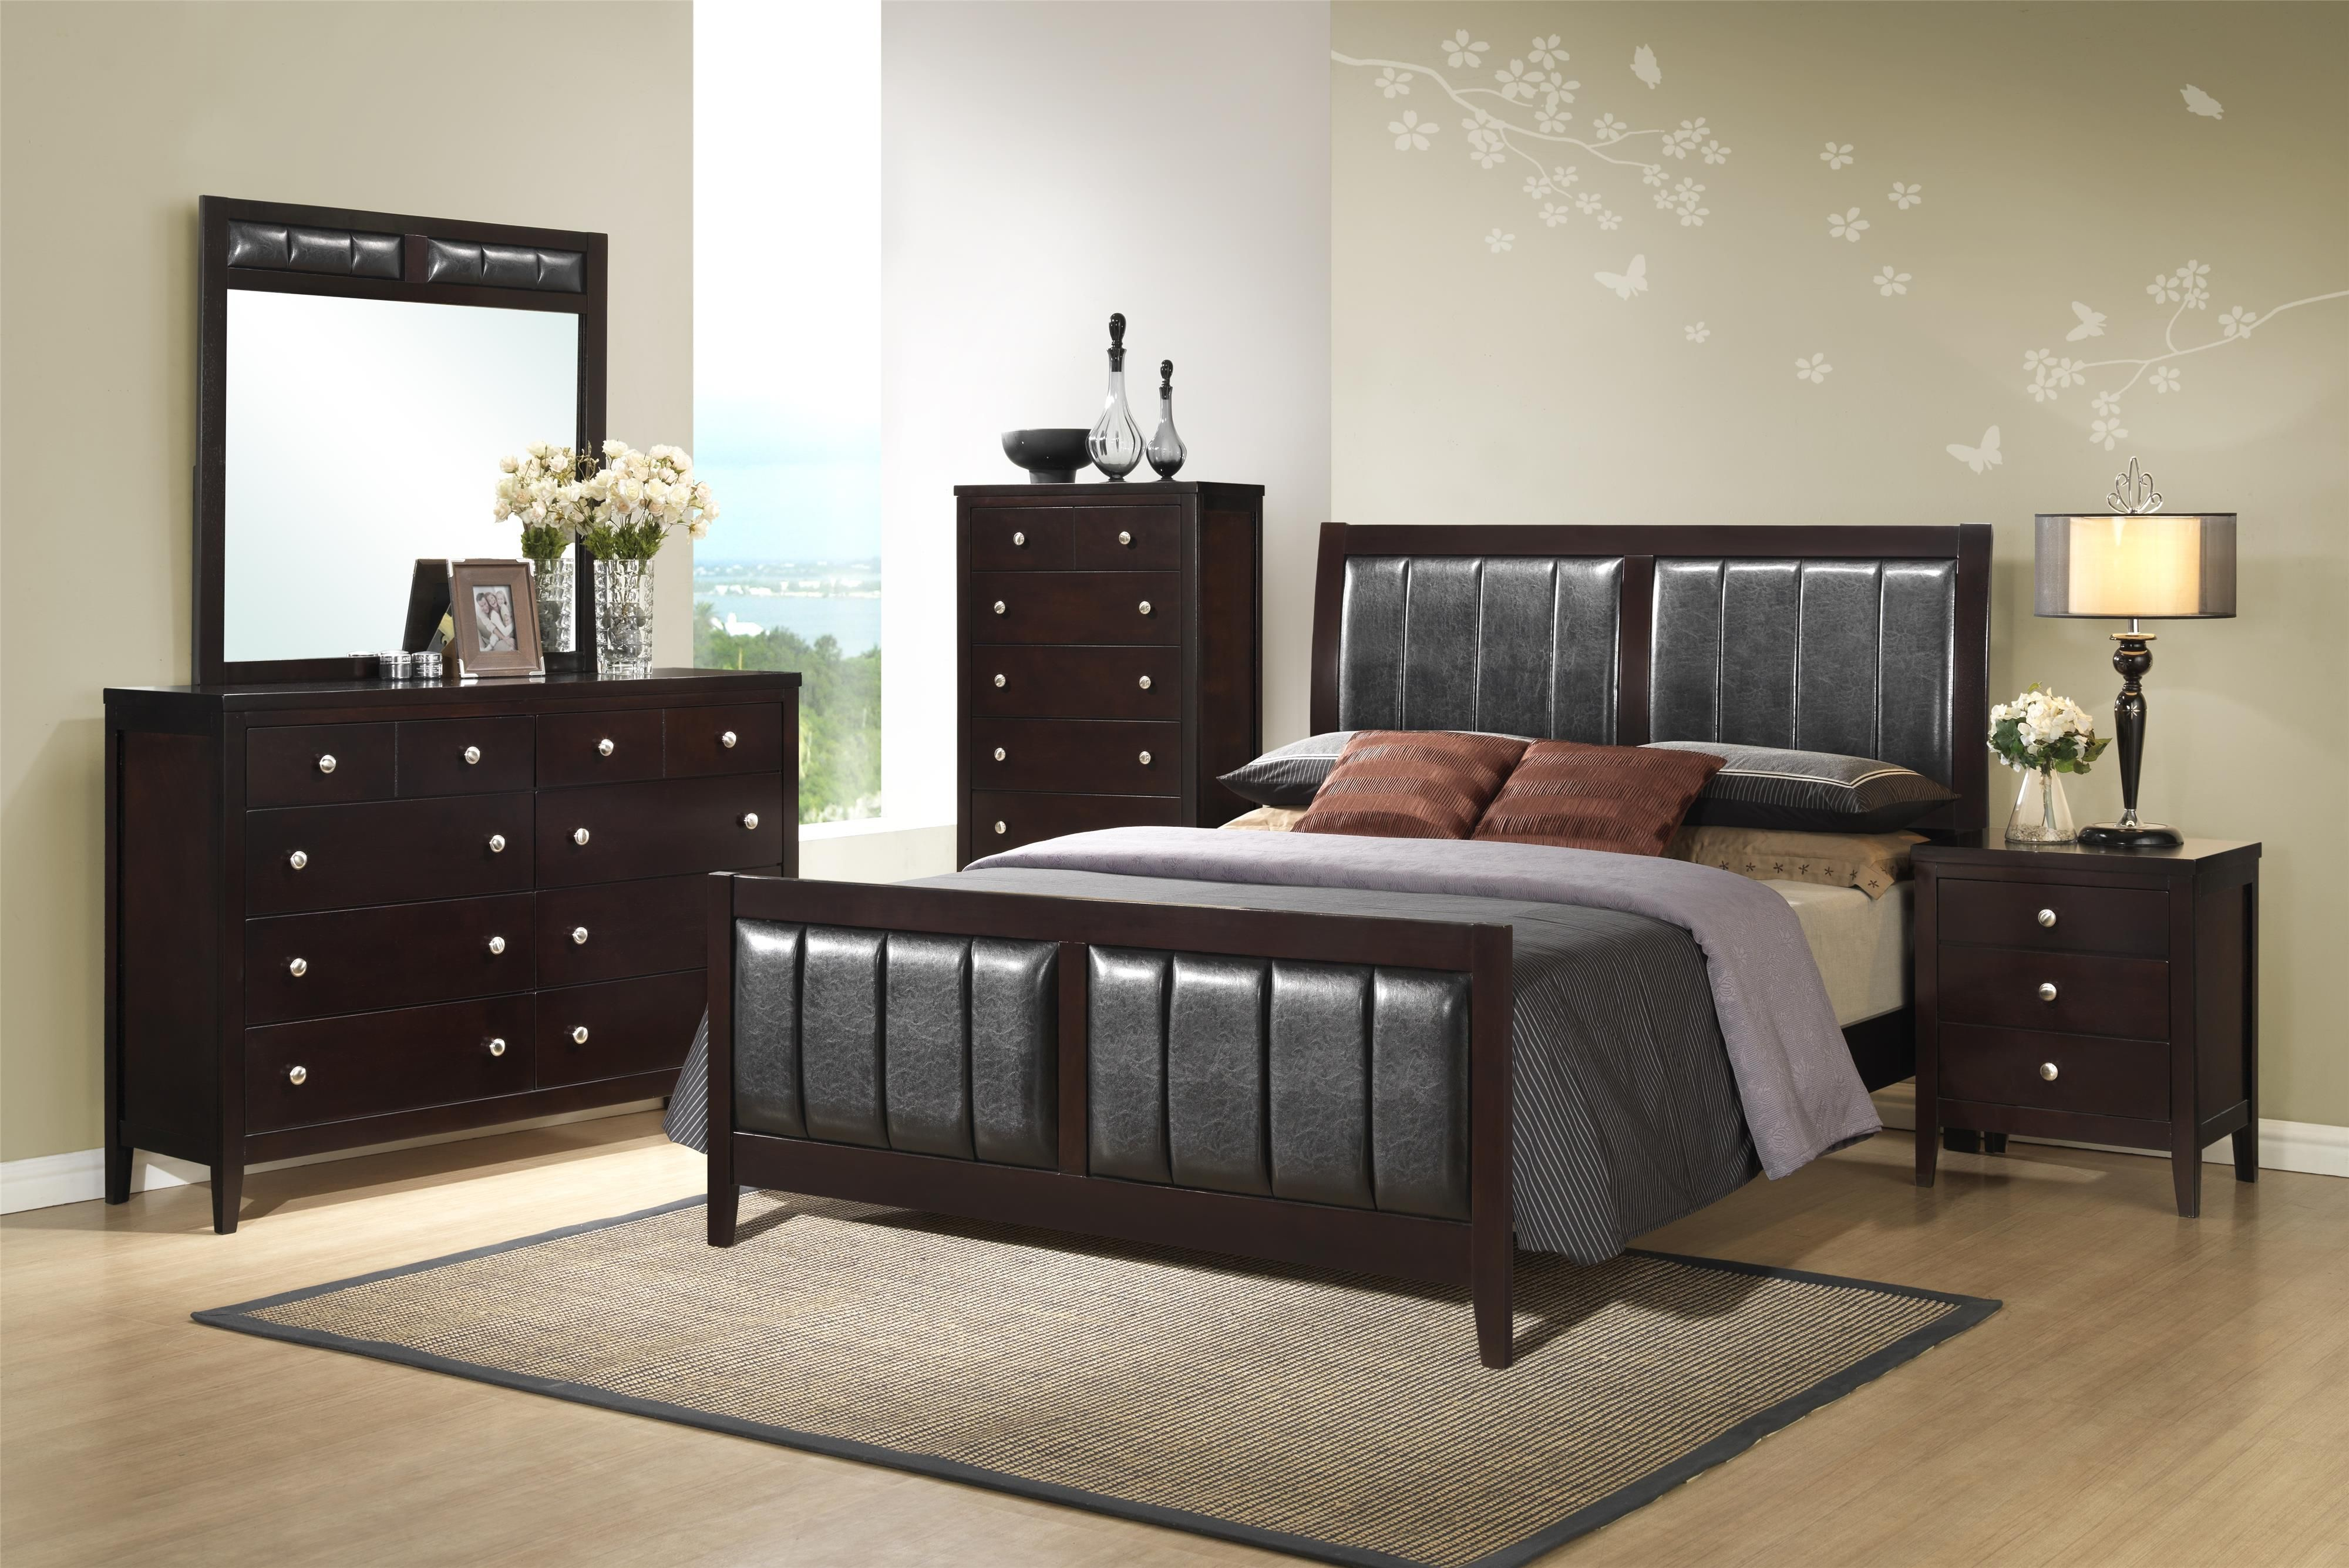 Bell King Bedroom Group by Austin Group | For the New House ...